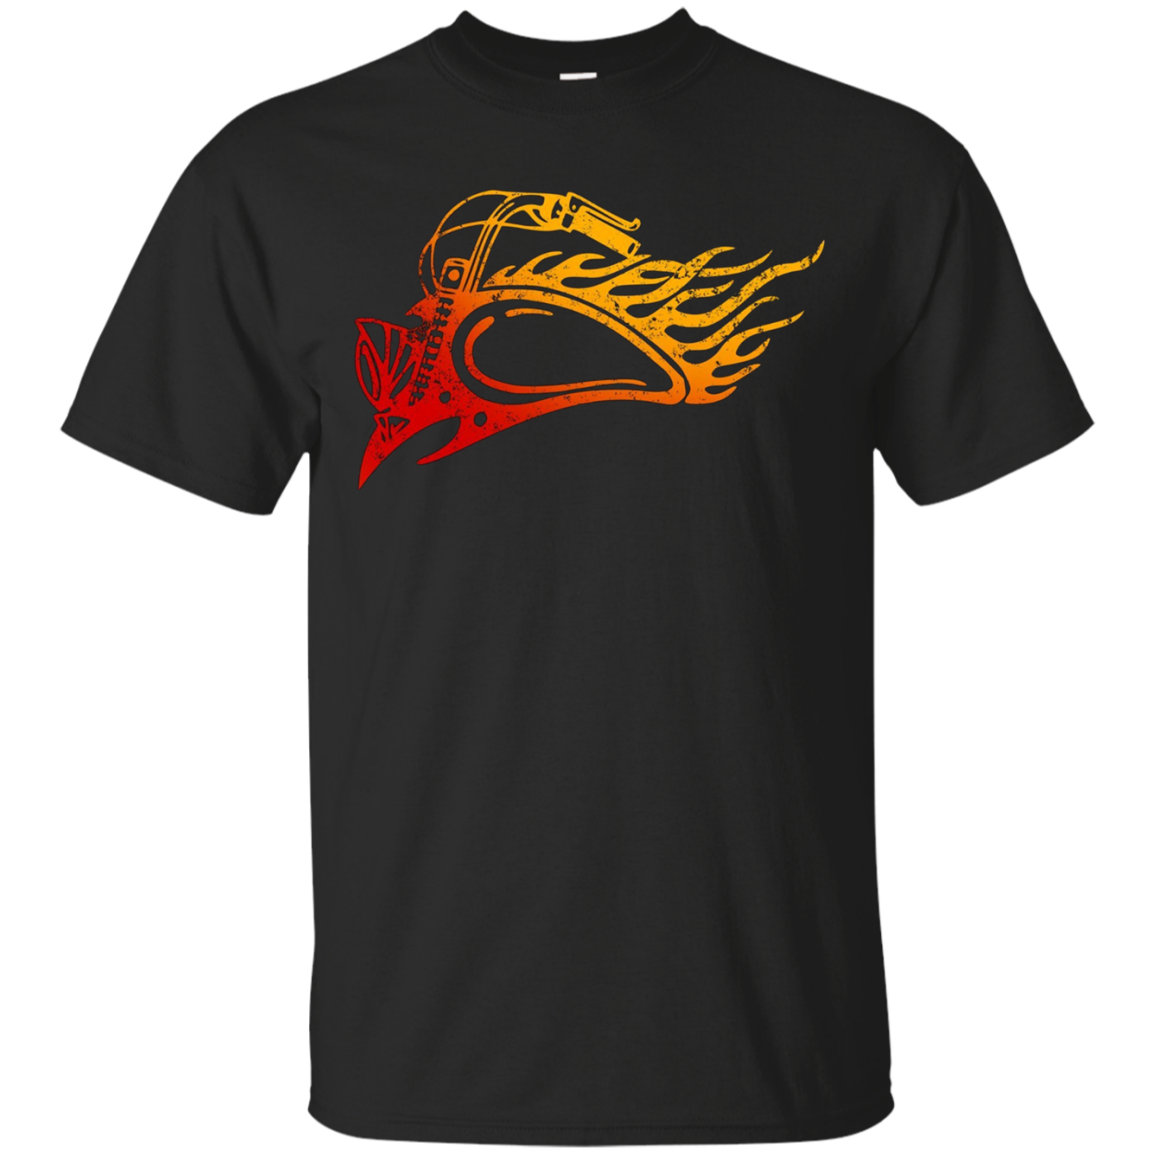 Motorcycle Addiction Funny T shirt Love Ride Flames Tattoo